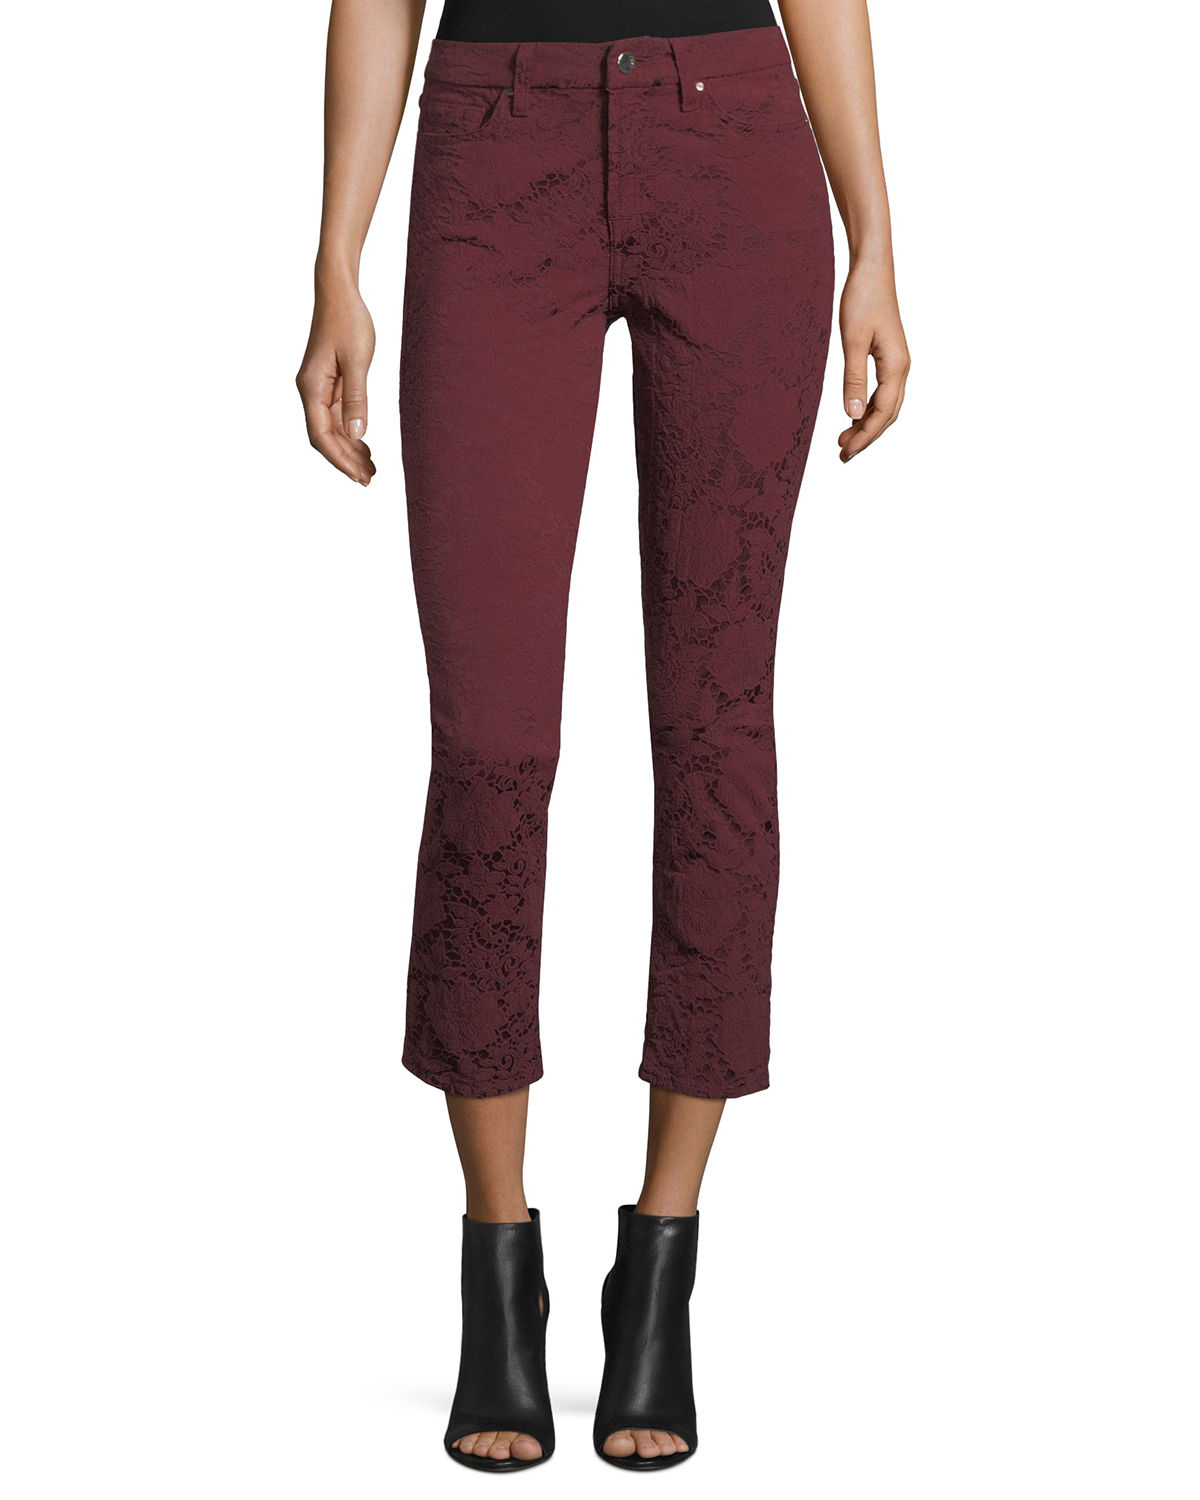 Perforated Jacquard Skinny Ankle Jeans